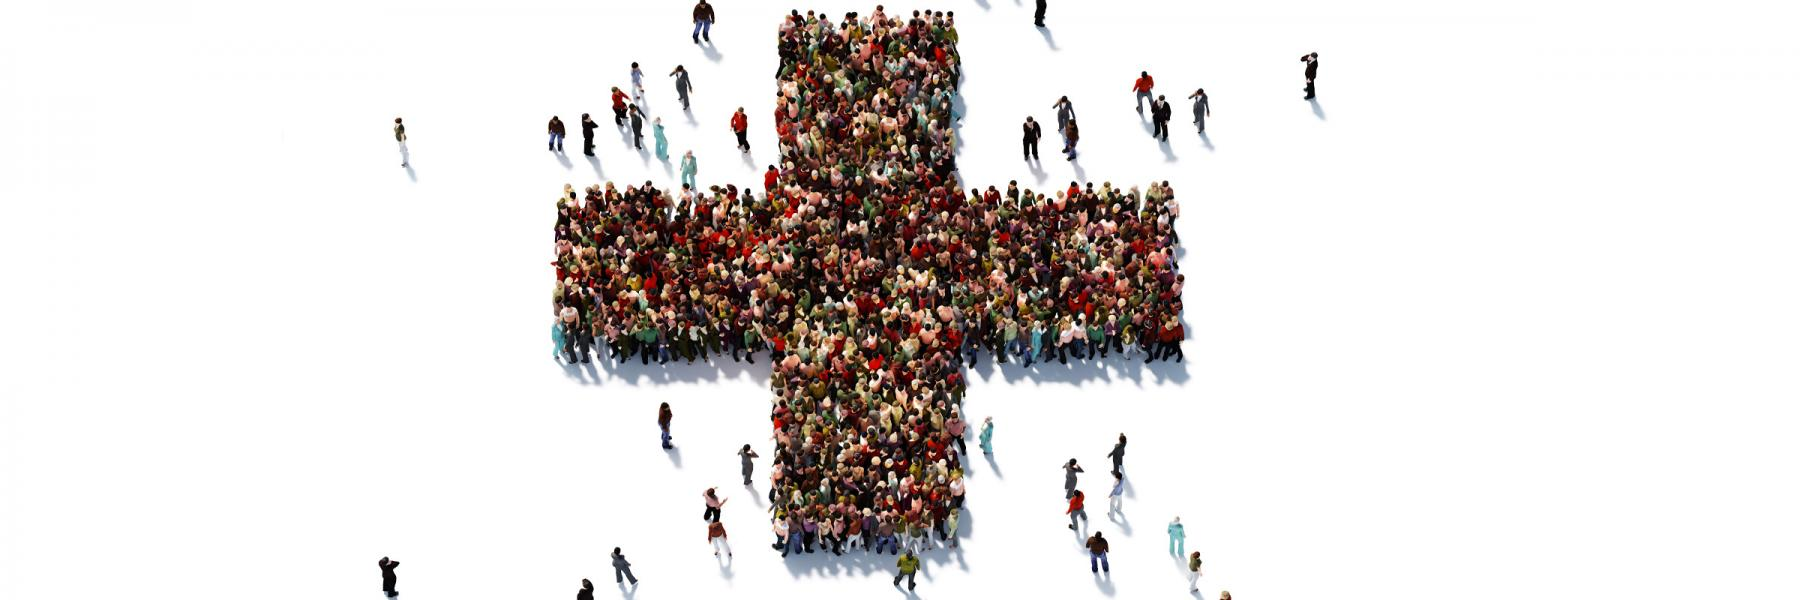 Crowd of people in the form of a medical cross symbol